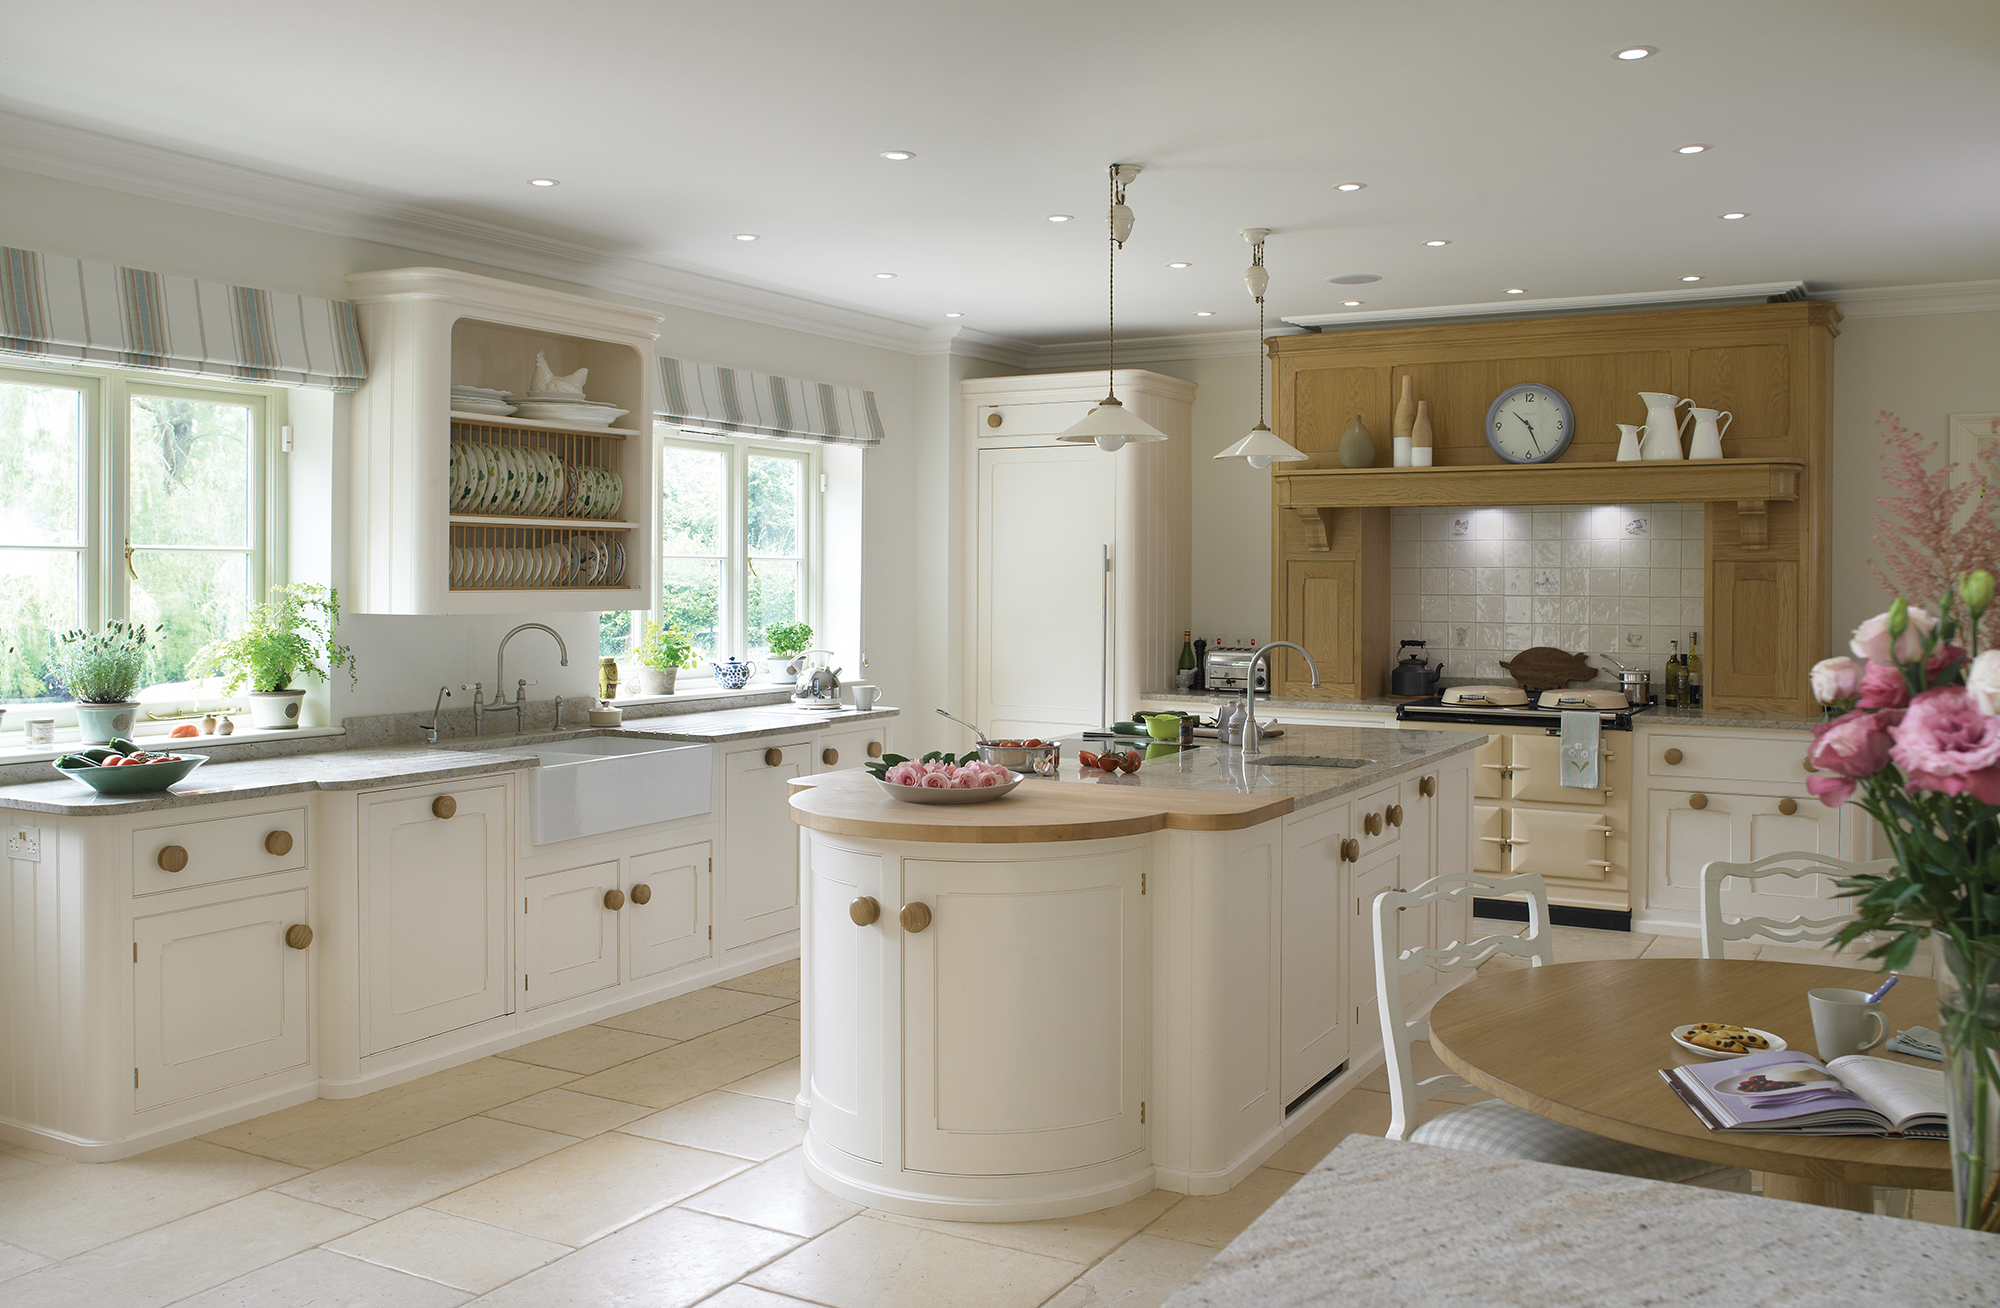 Luxury bespoke kitchens the cook 39 s kitchen mark wilkinson - Images of kitchens ...